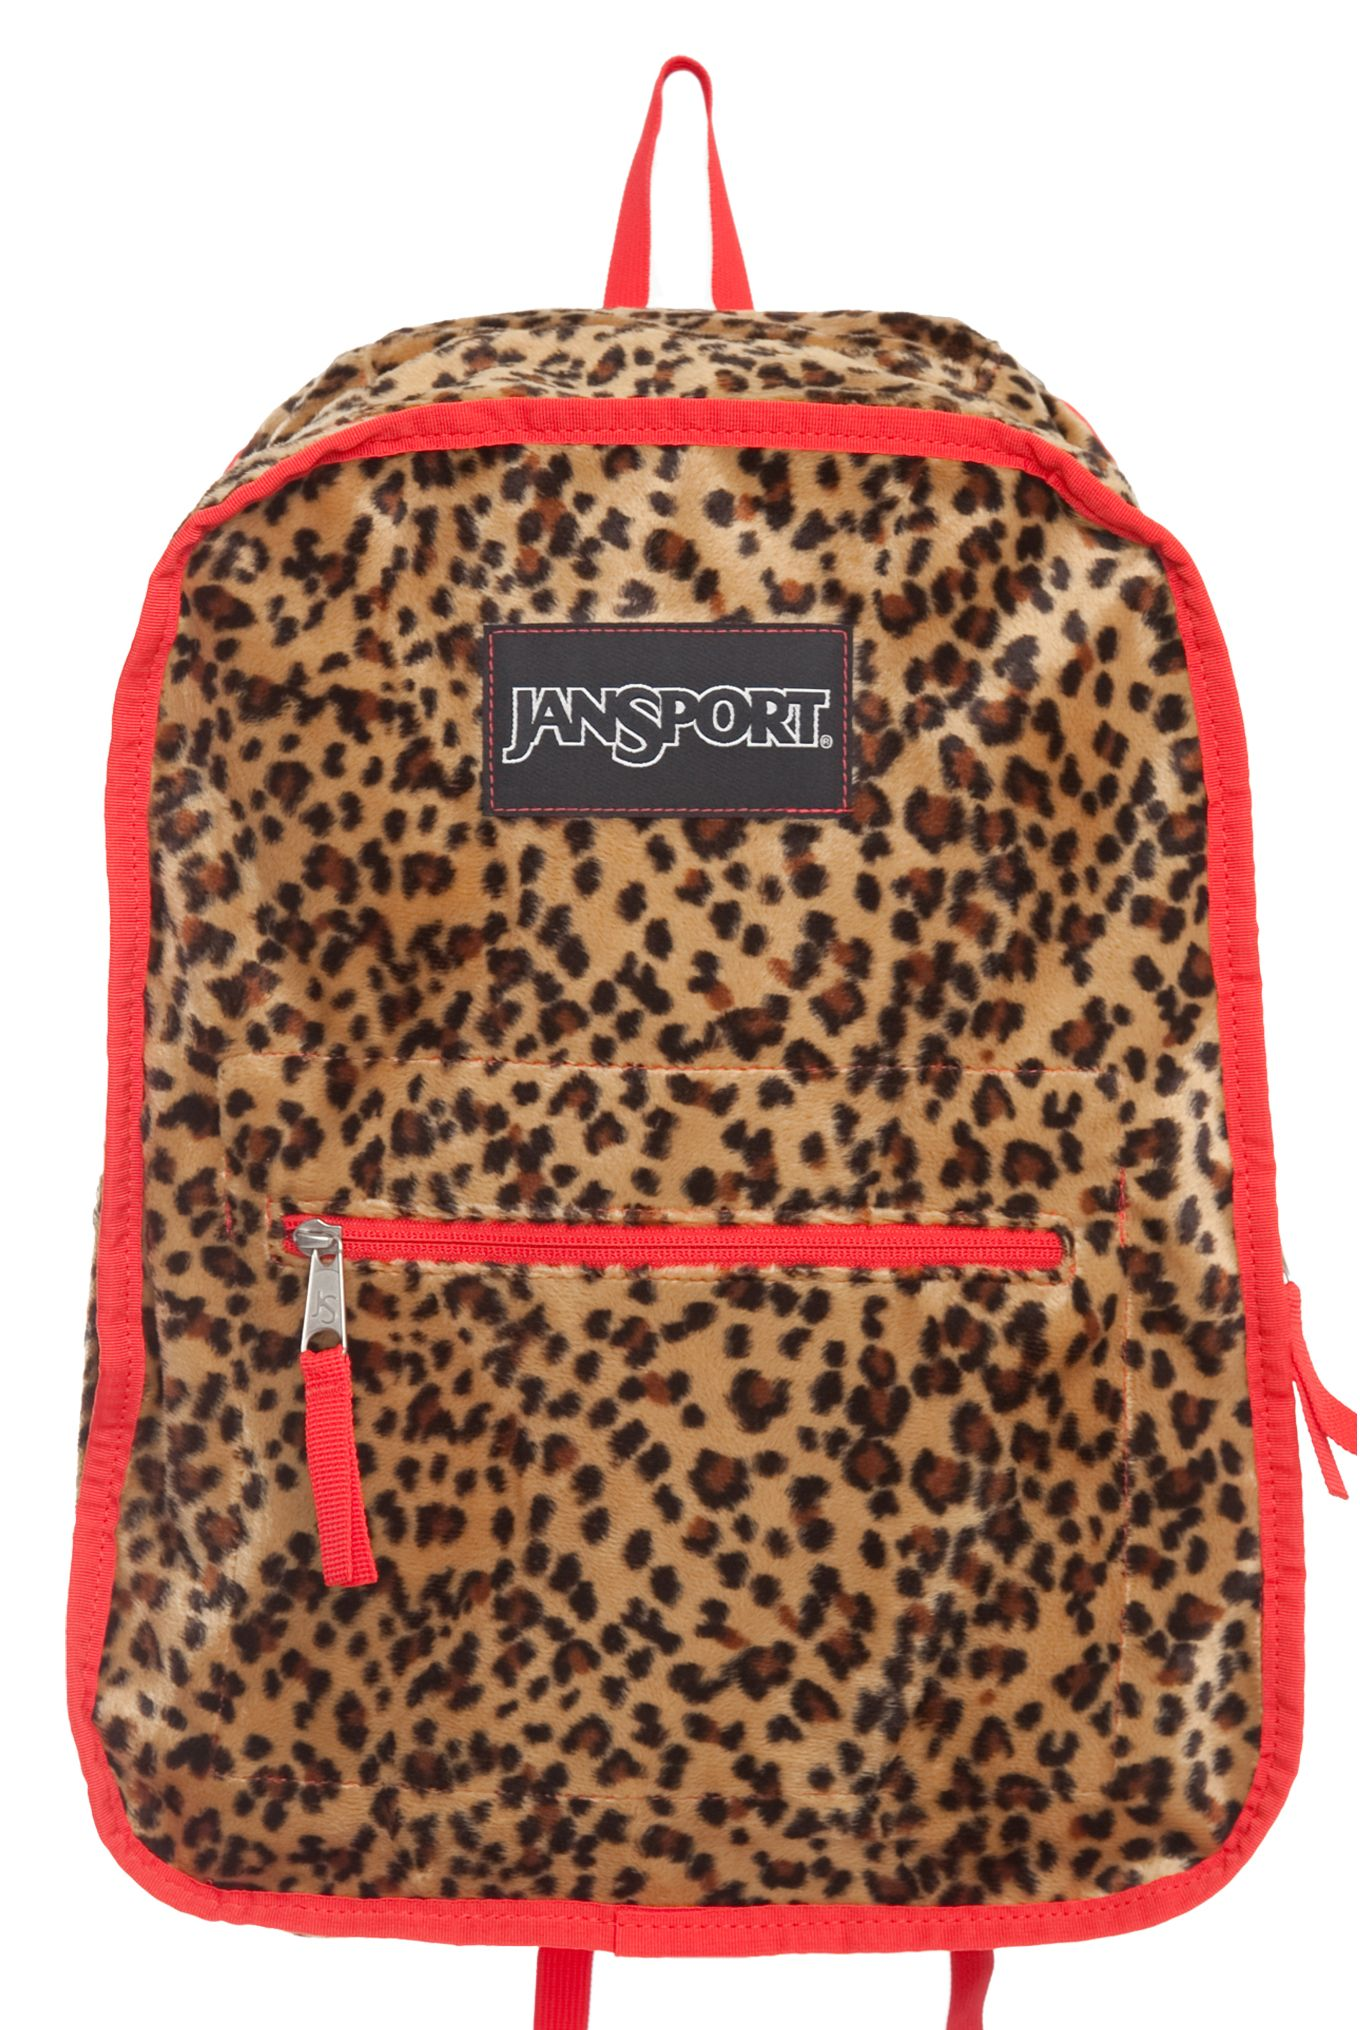 """This+Jansport+backpack+is+reversible+for+a+""""mild+and+wild""""+color+option+and+features+straight-cut,+padded+shoulder+straps+with+detachable+swivel+hooks+for+reversing,+one+large+main+compartment,+front+utility+pocket+and+internal+stash+pocket."""